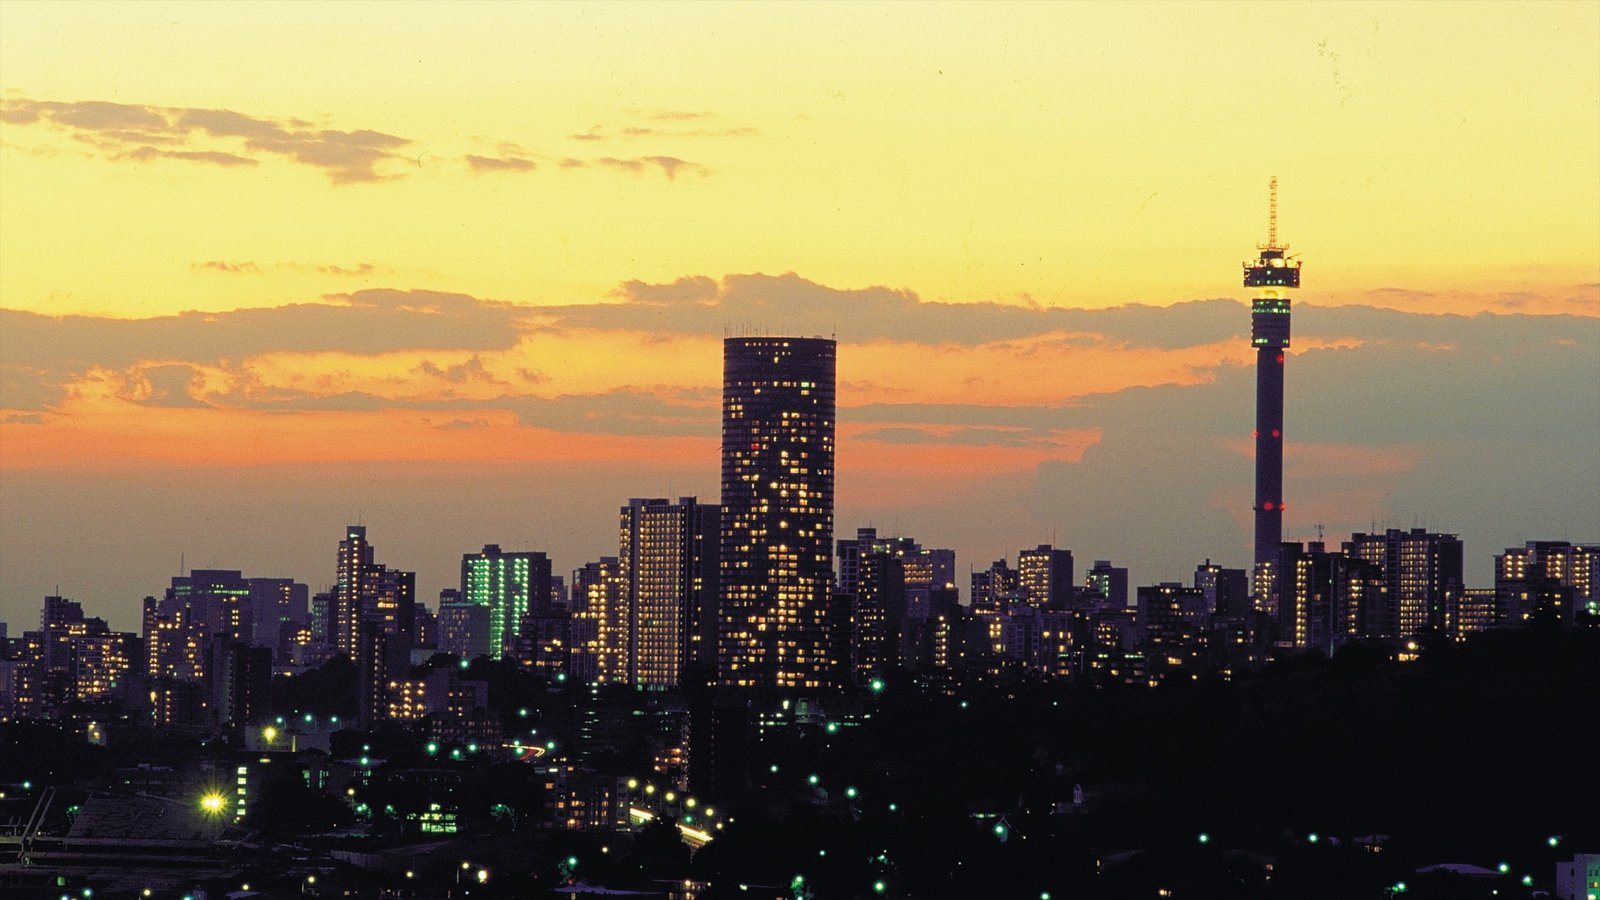 Sunset sunrise pictures view images of johannesburg gauteng johannesburg gauteng showing a city skyline and a high rise building thecheapjerseys Choice Image